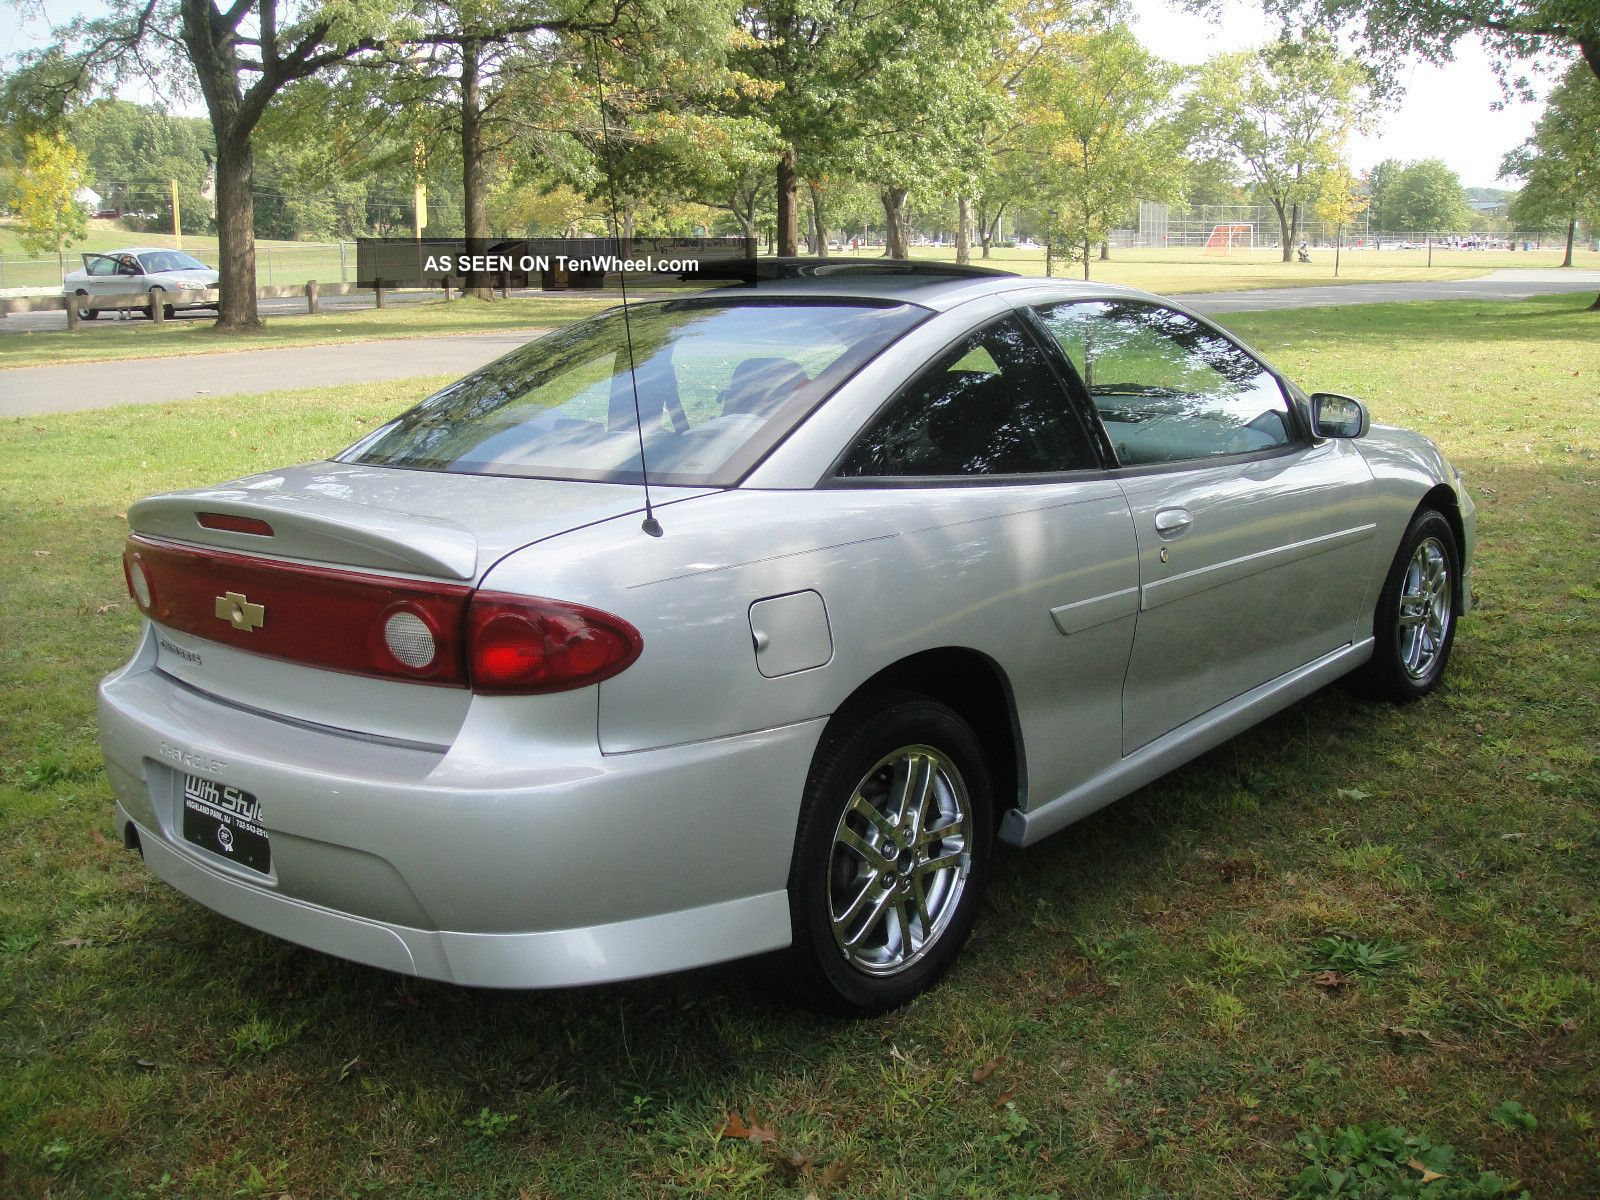 2005 chevrolet cavalier ls sport coupe fully loaded cavalier photo 5. Cars Review. Best American Auto & Cars Review